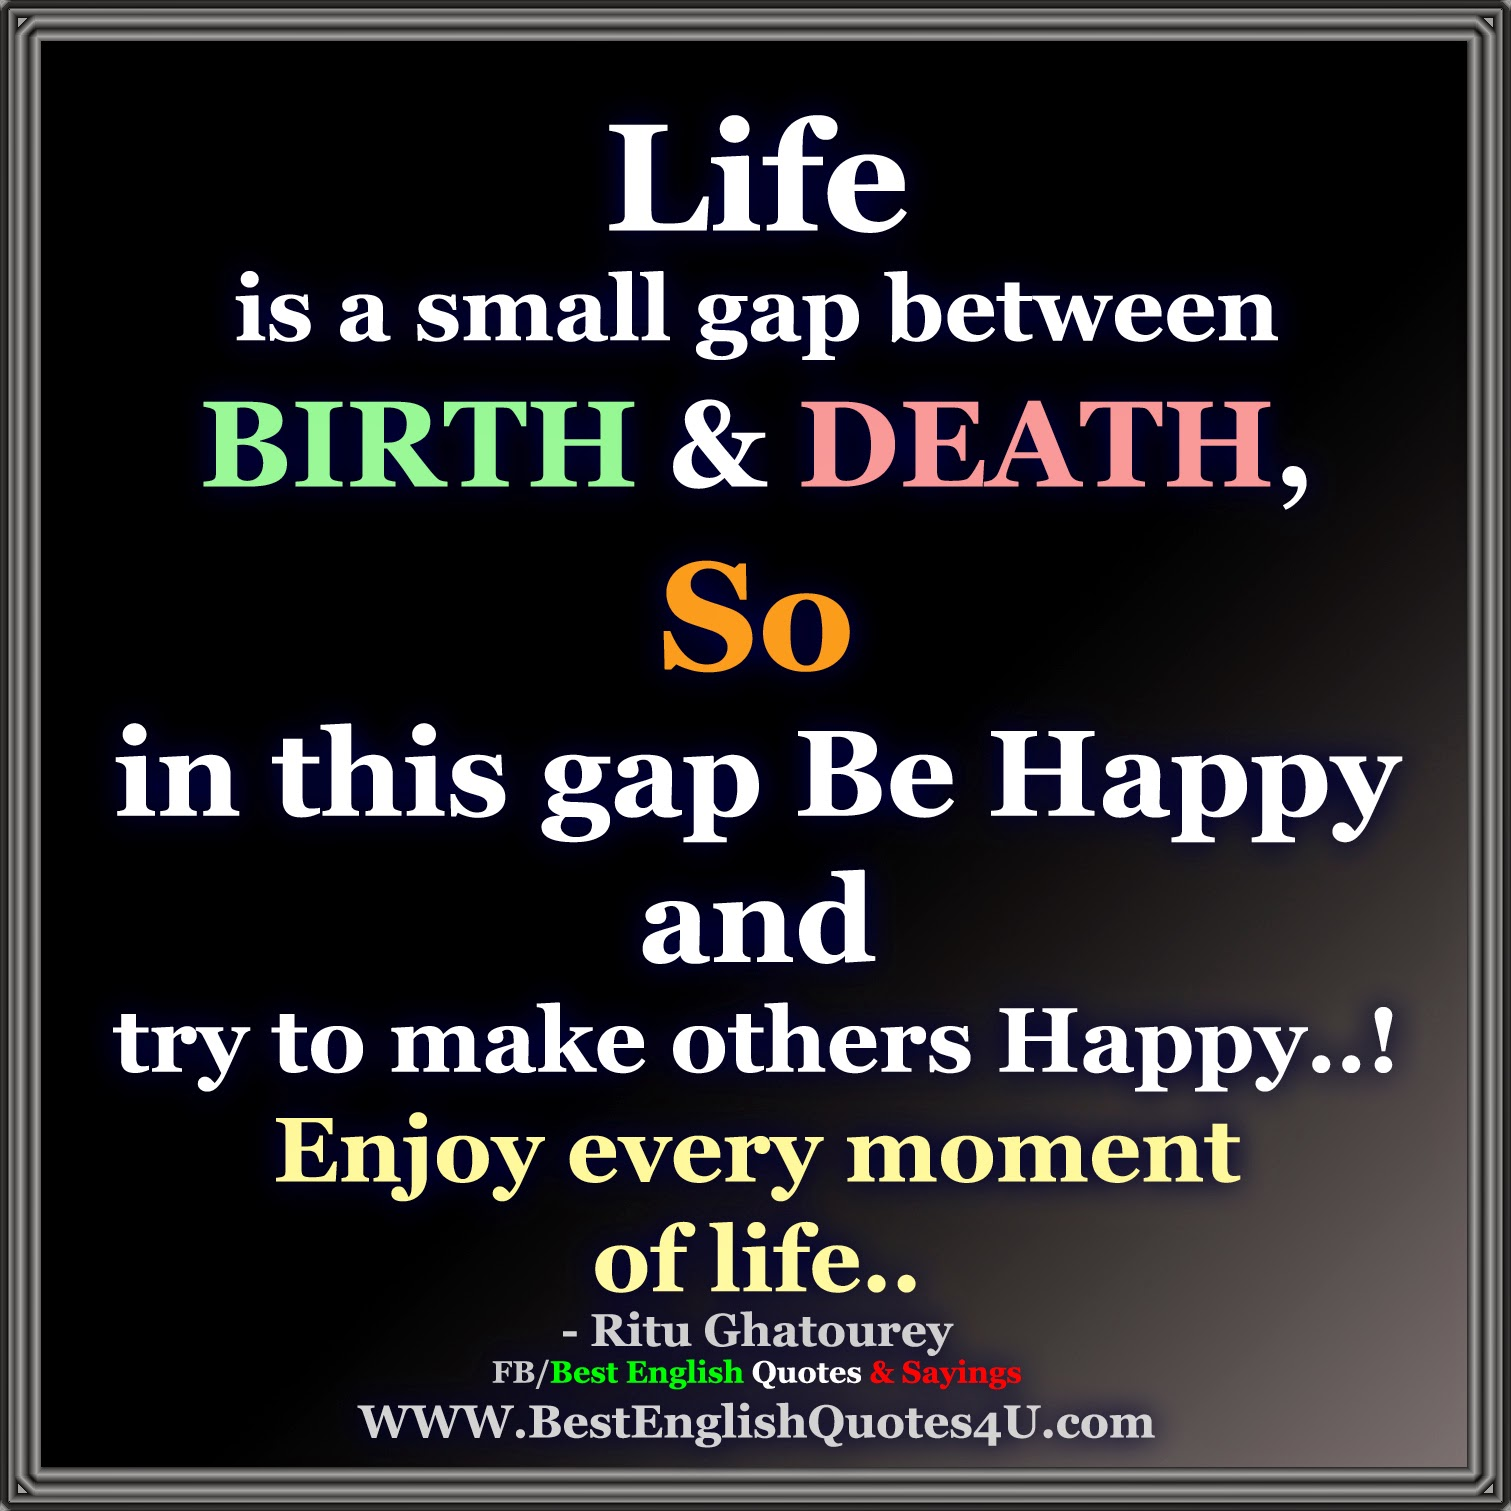 Best English Quotes About Life: Life Is A Small Gap Between BIRTH & DEATH...